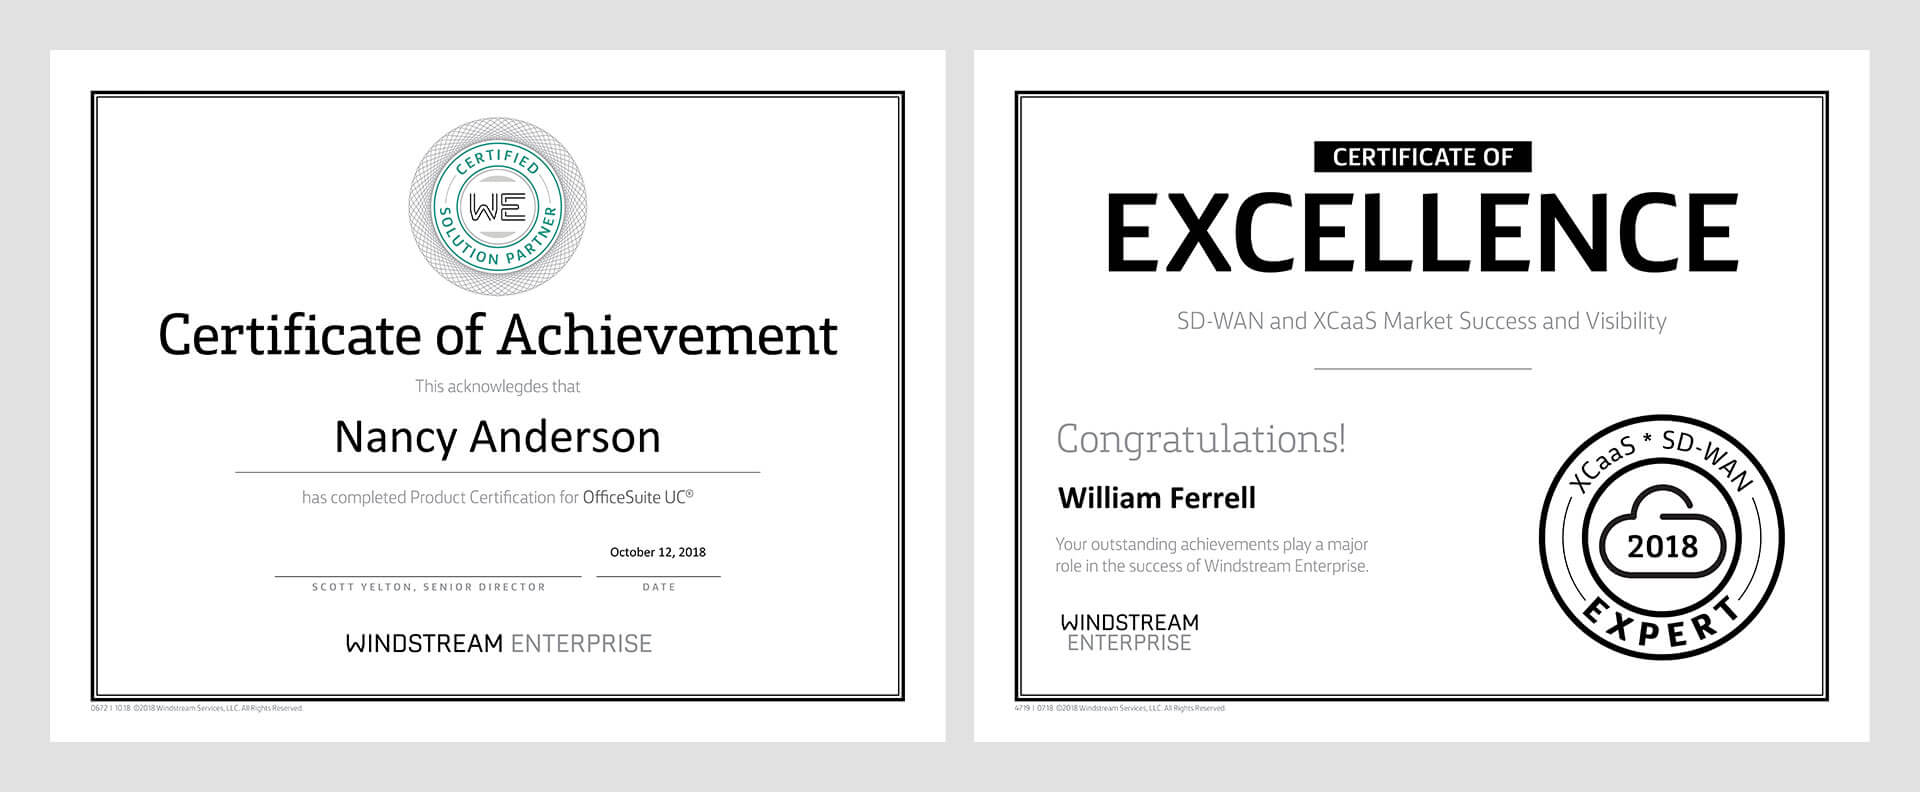 Windstream Marcom Certificates